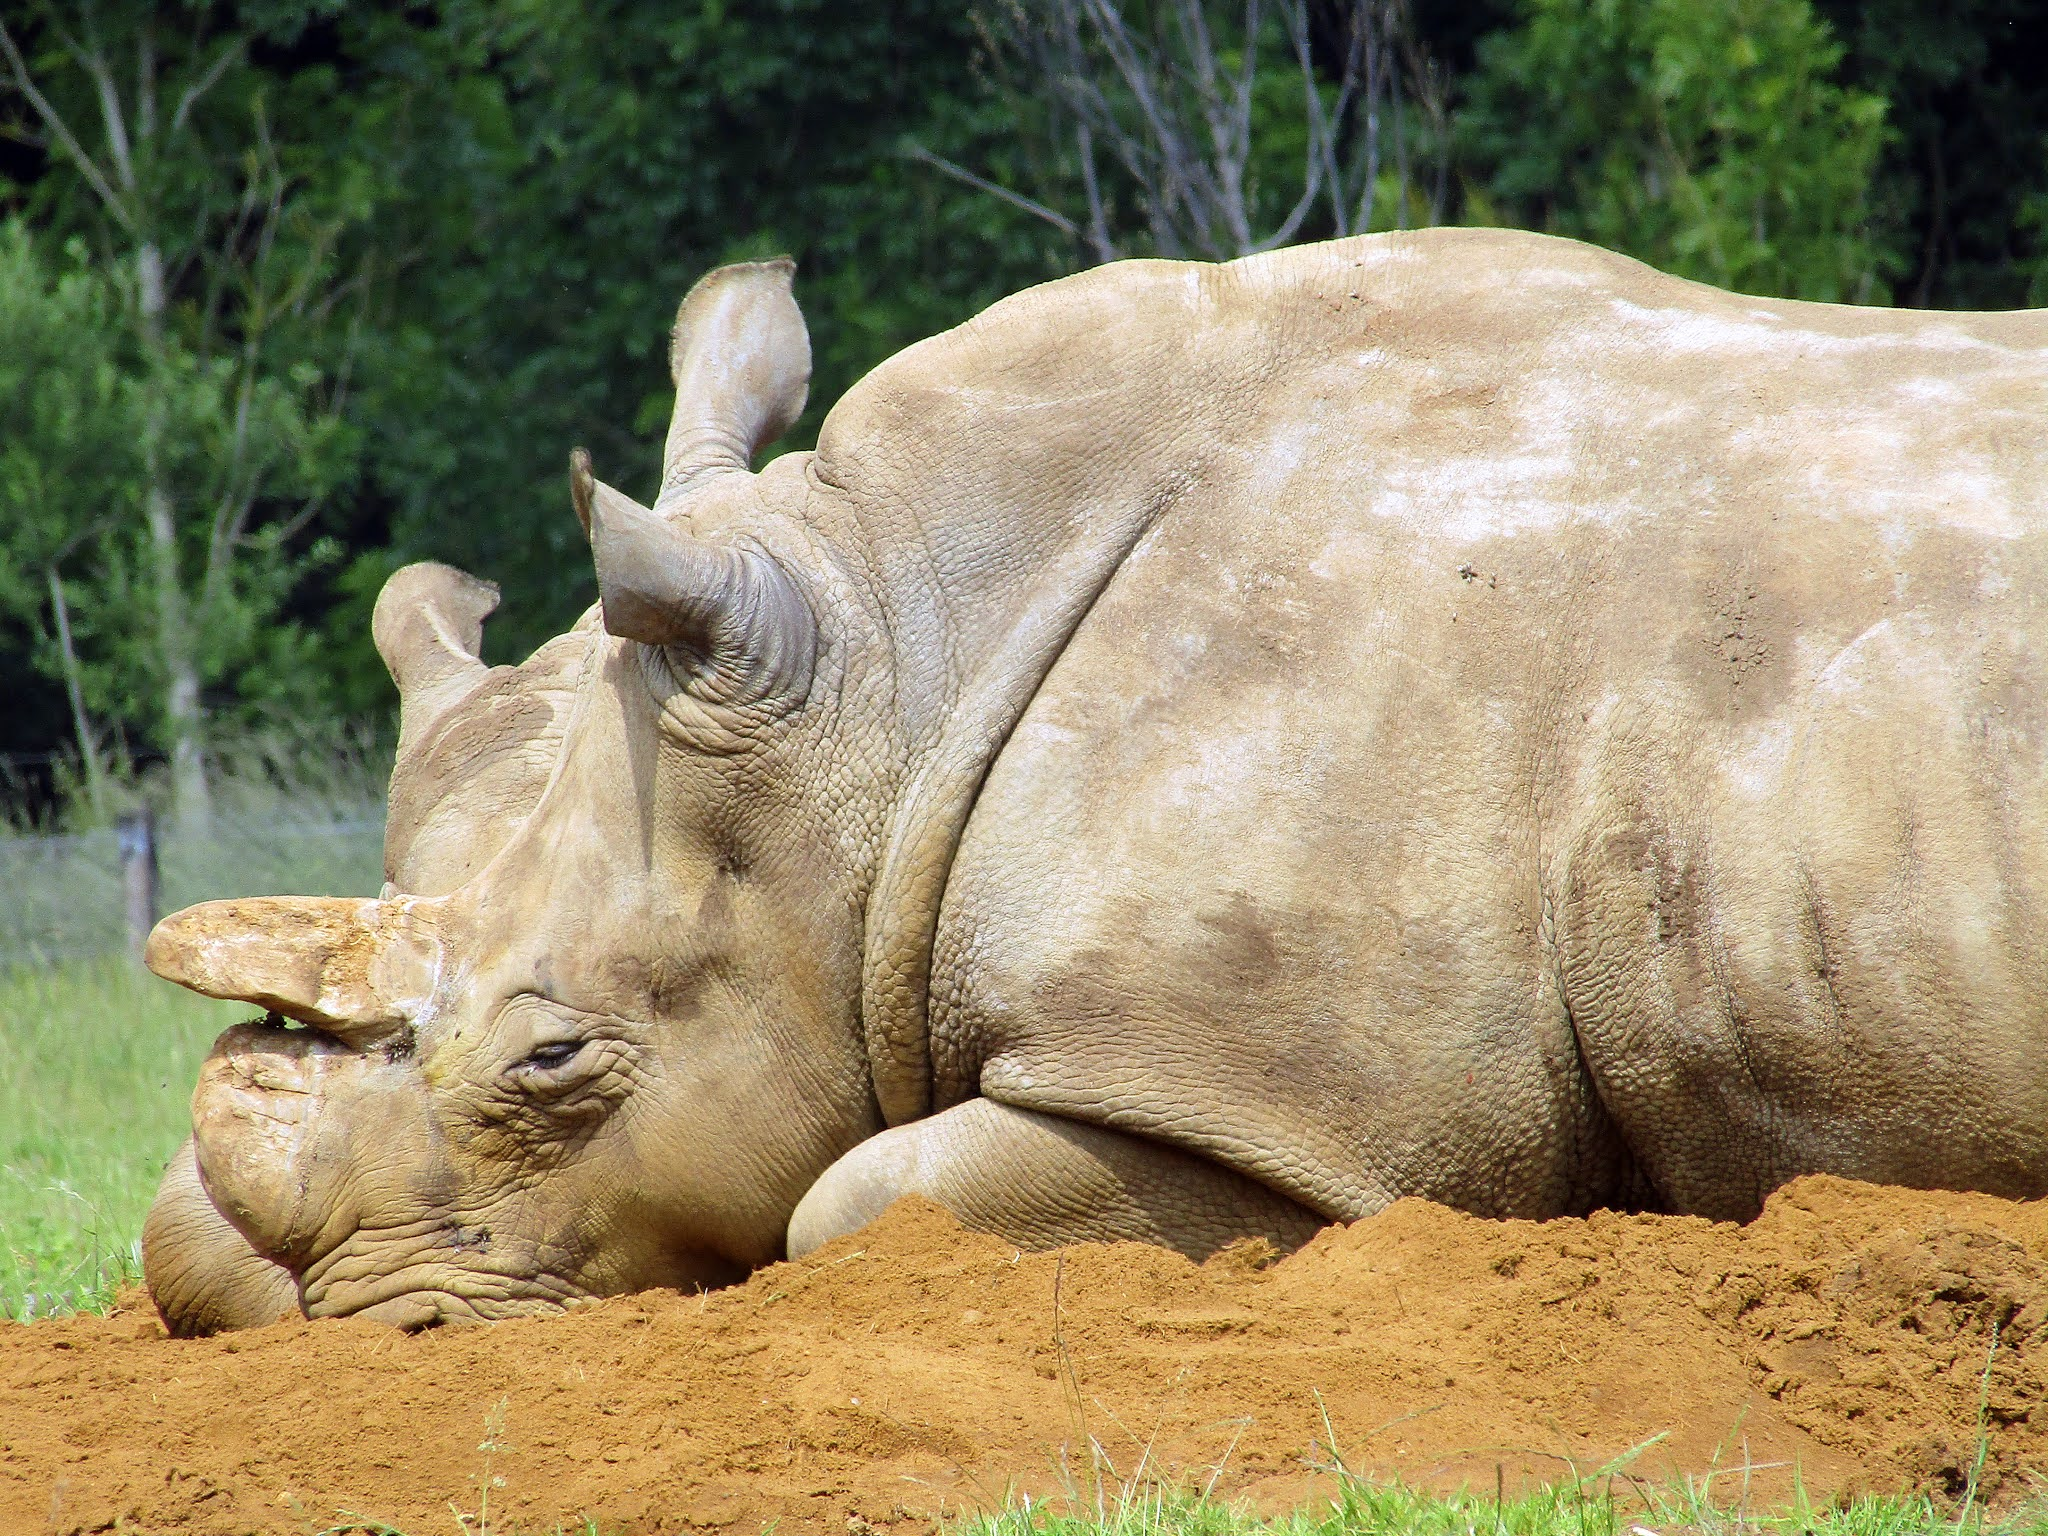 A photo of a sleeping white rhino at Whipsnade Zoo.